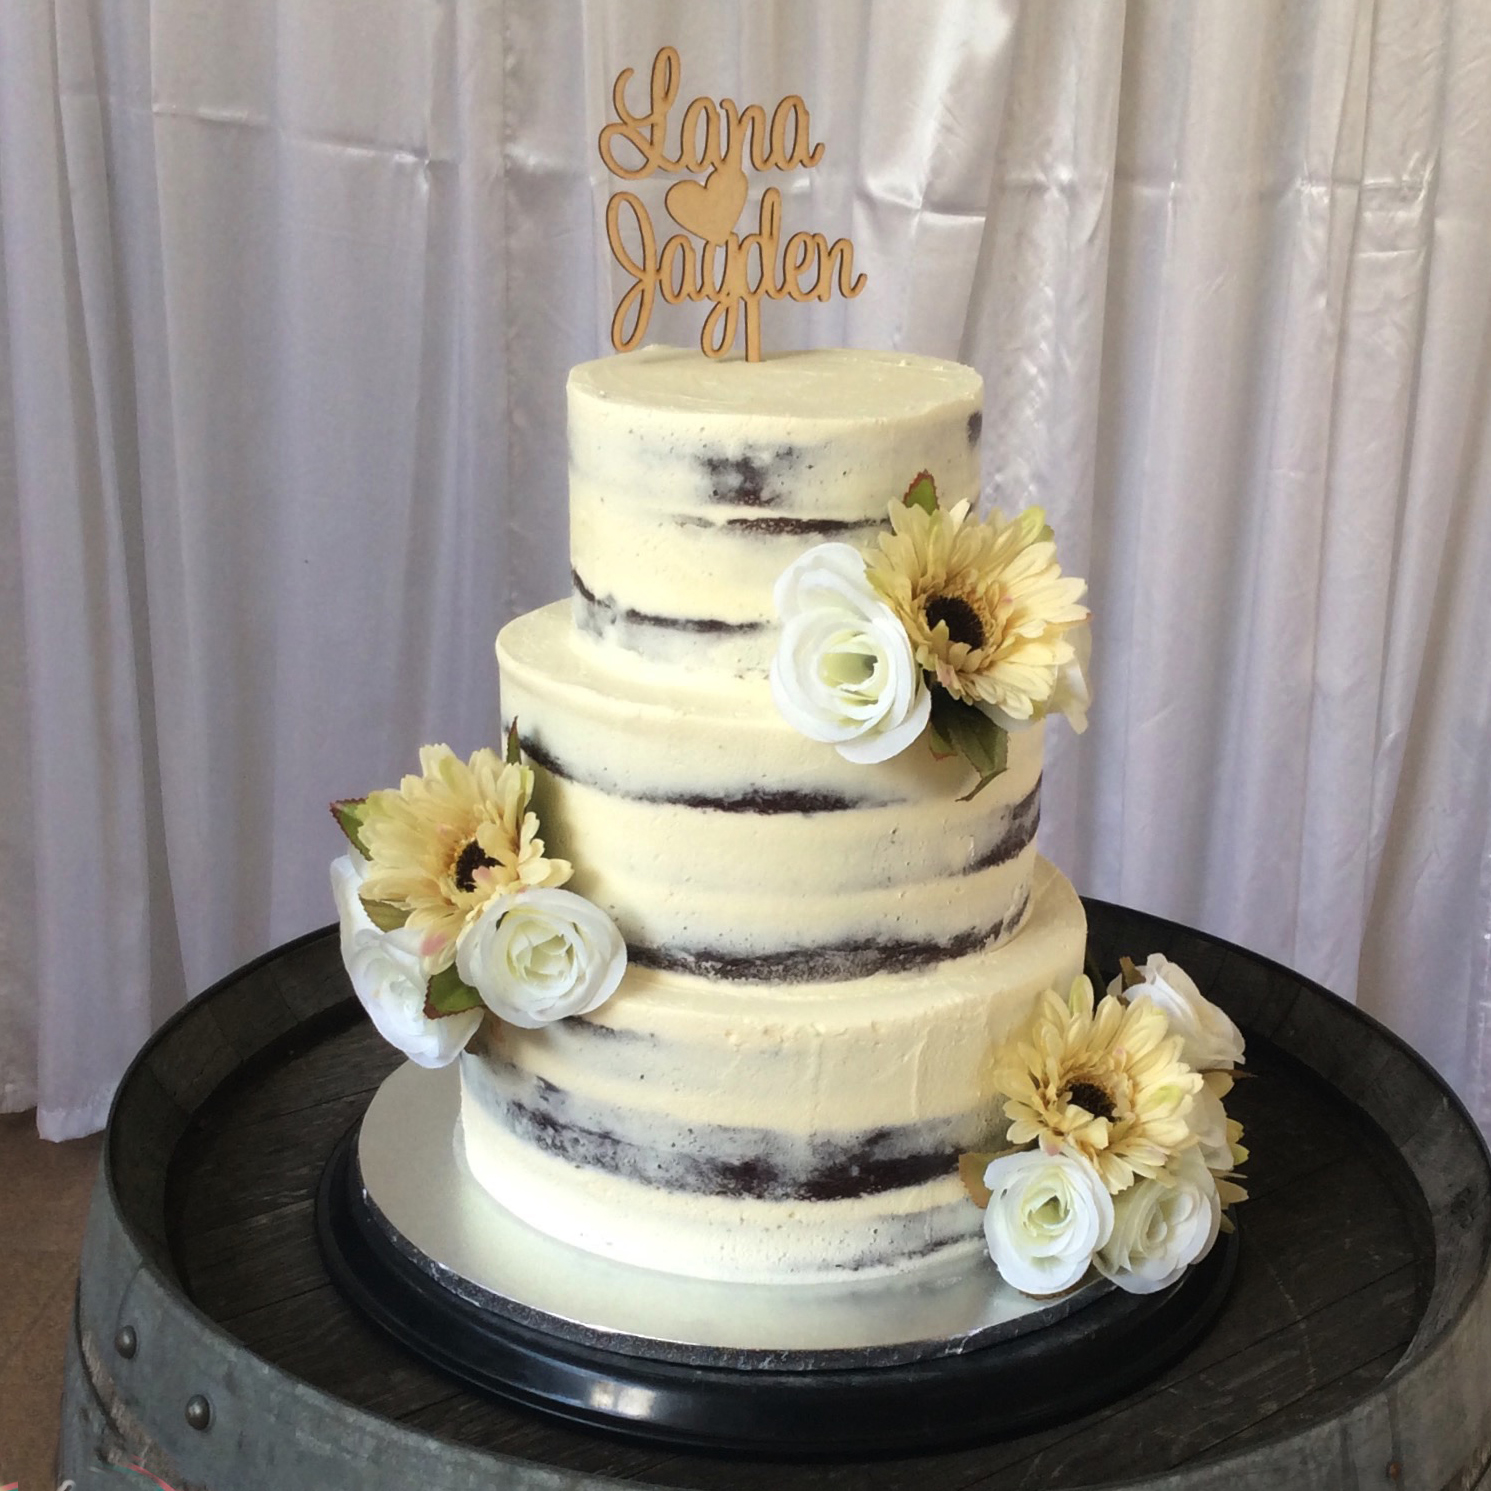 wedding cakes southport gold coast wedding cakes gold coast true 25496